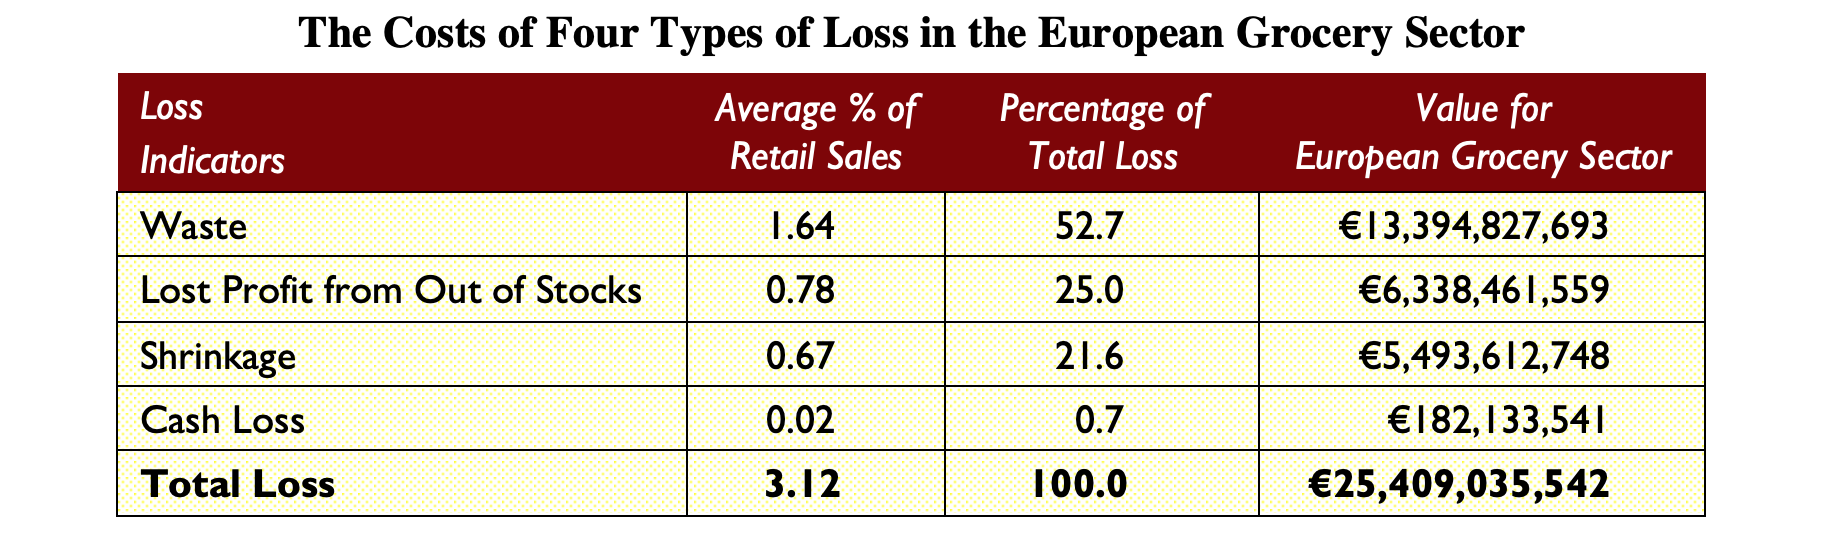 Table: The Costs of Four Types of Loss in the European Grocery Sector